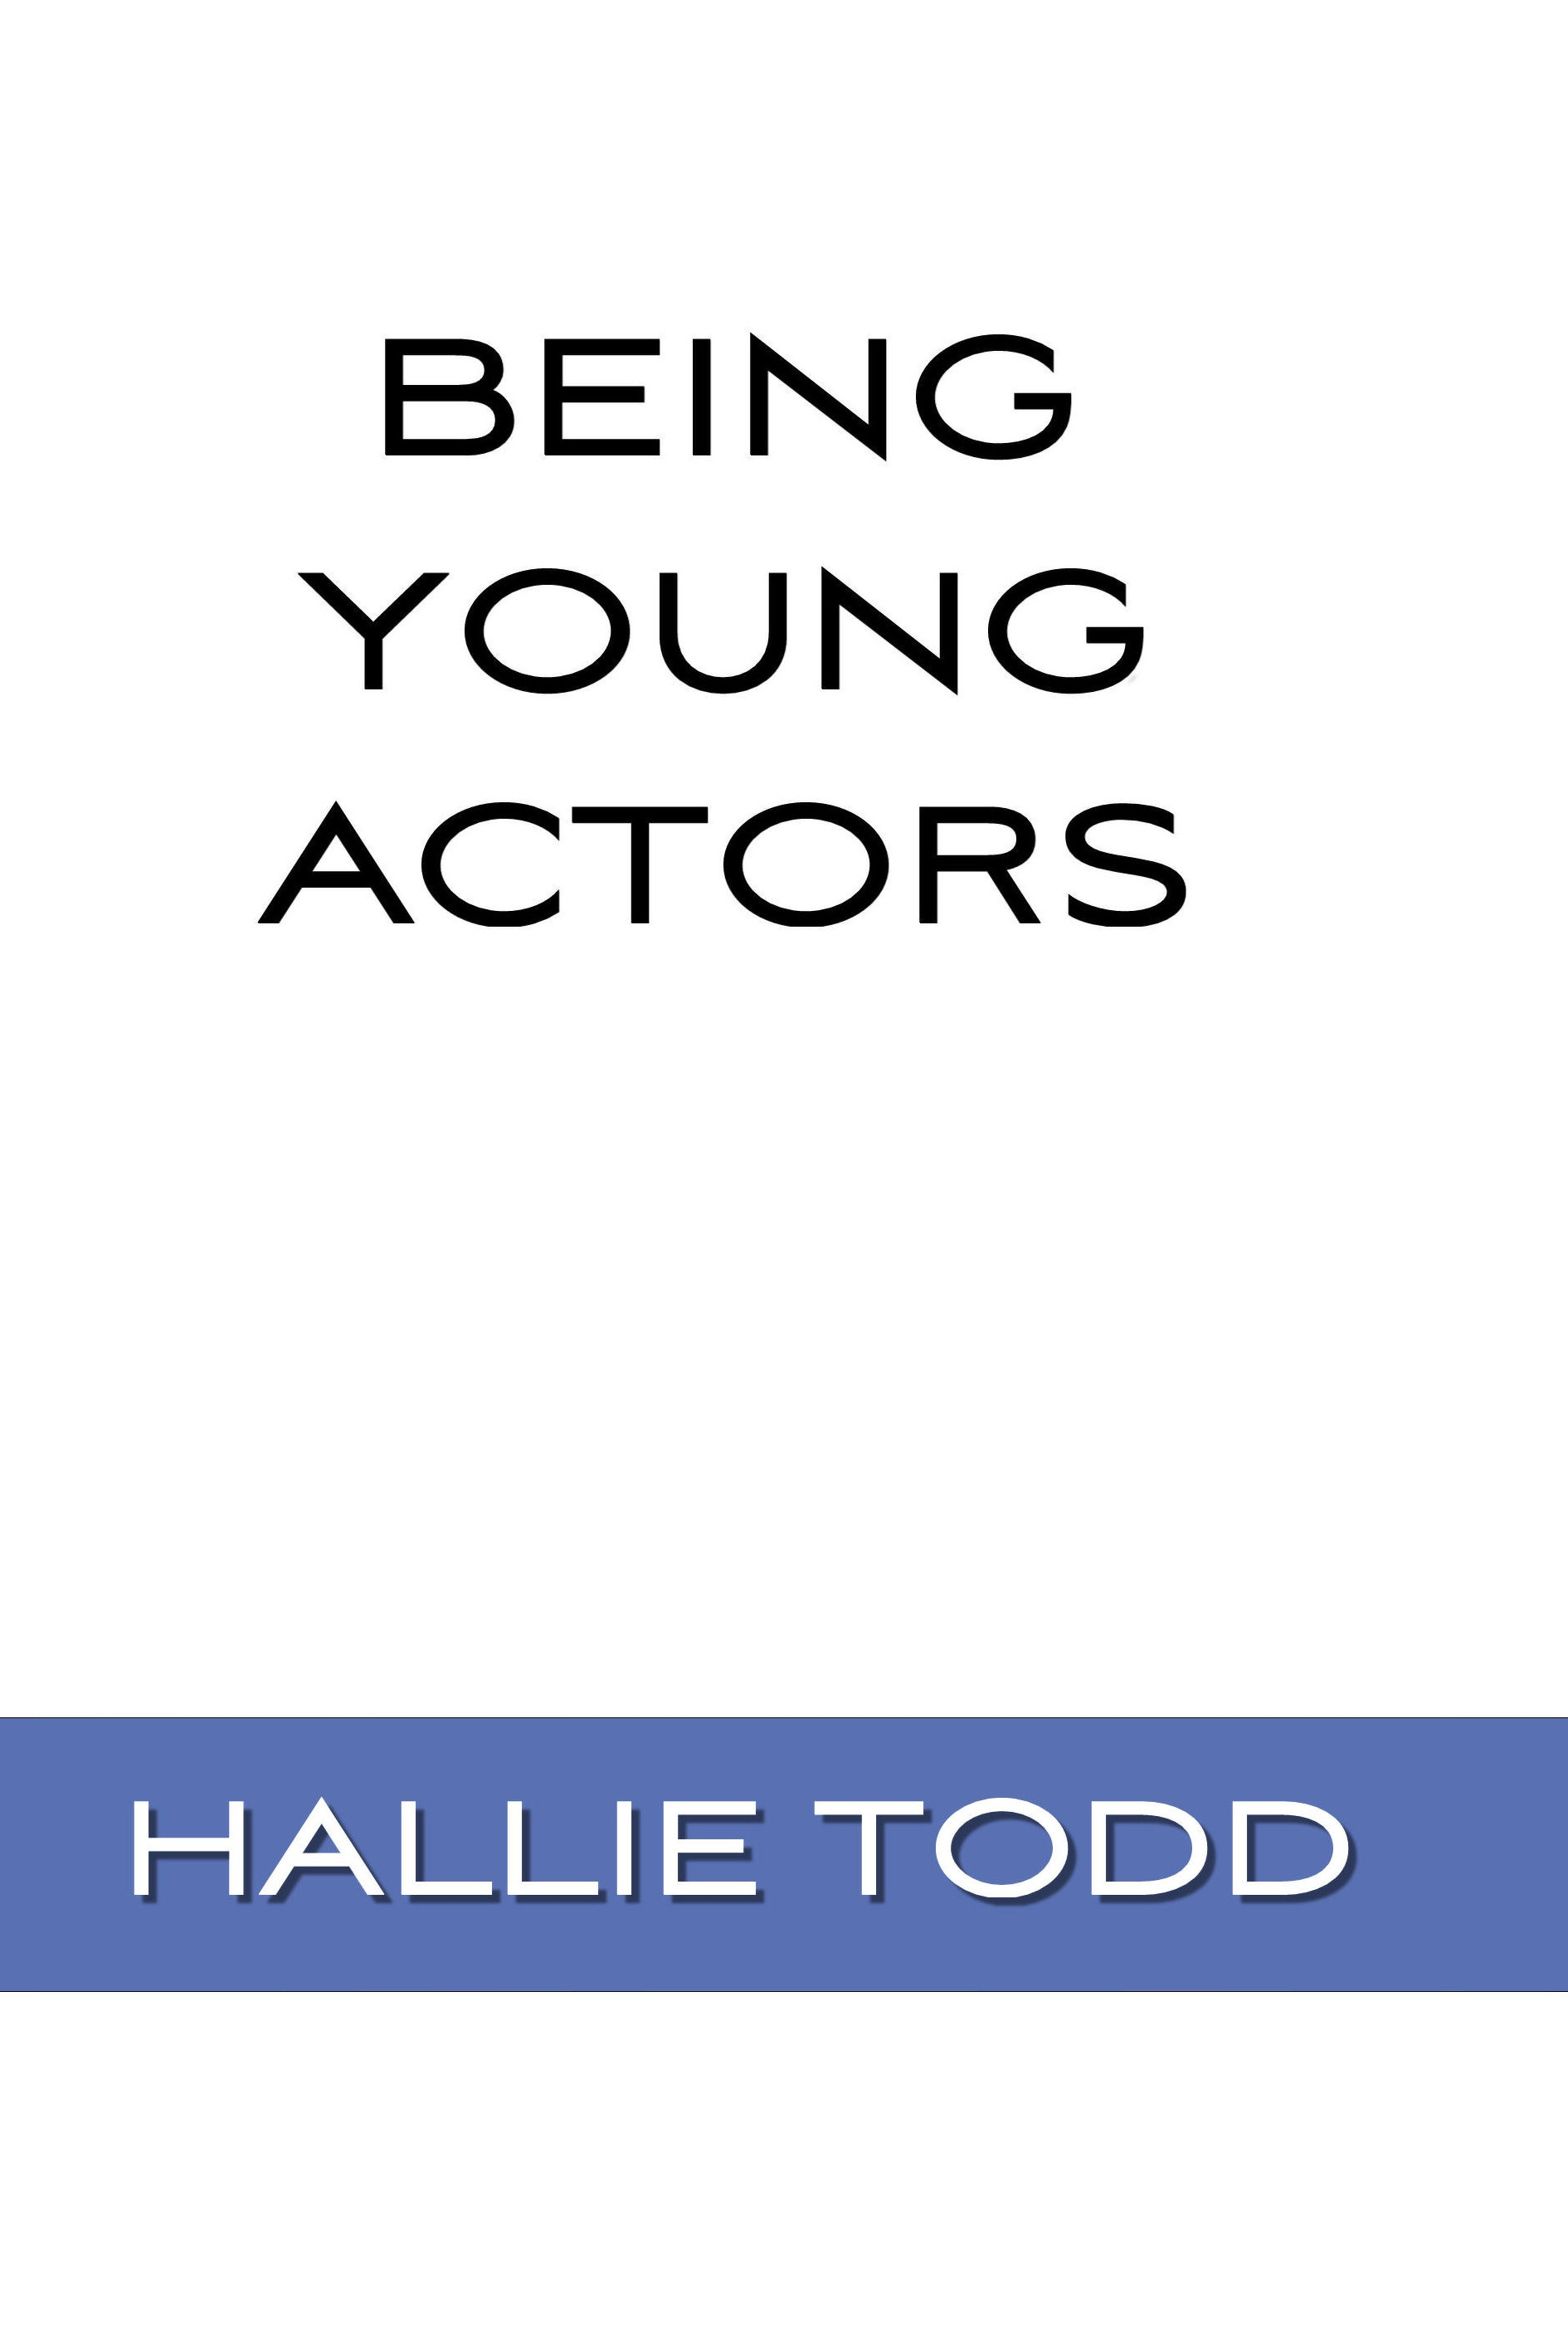 Being Young Actors